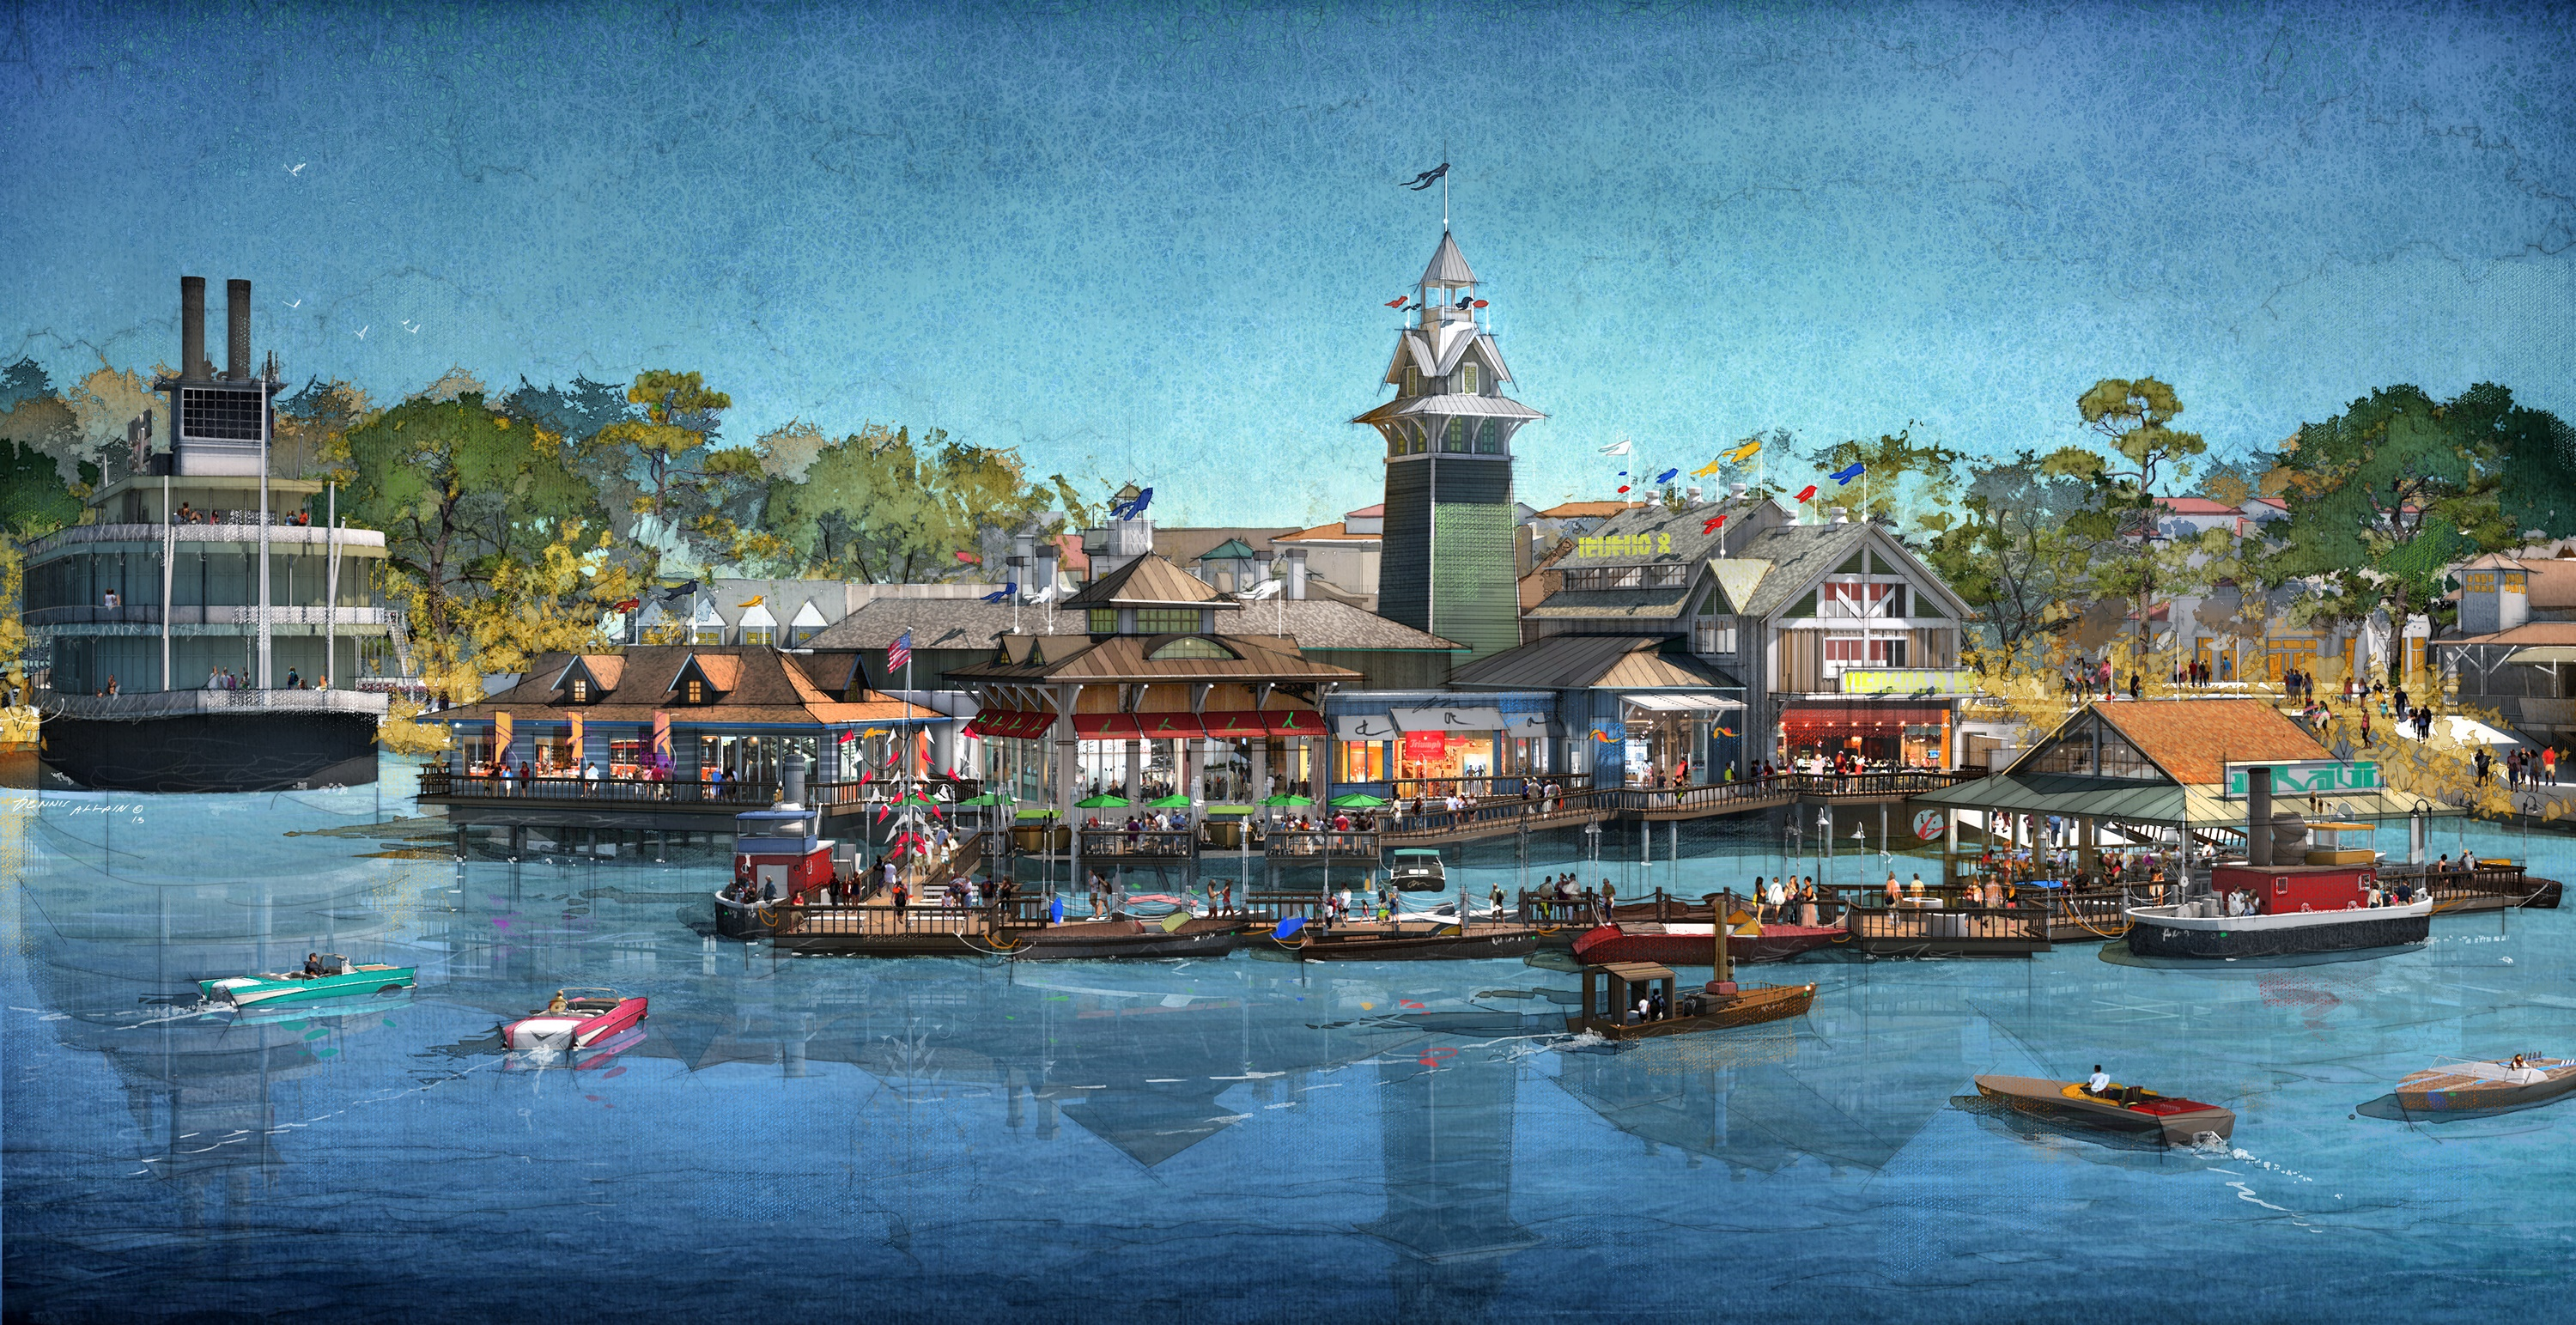 BOATHOUSE Restaurant will Bring Food and Entertainment to Disney Springs